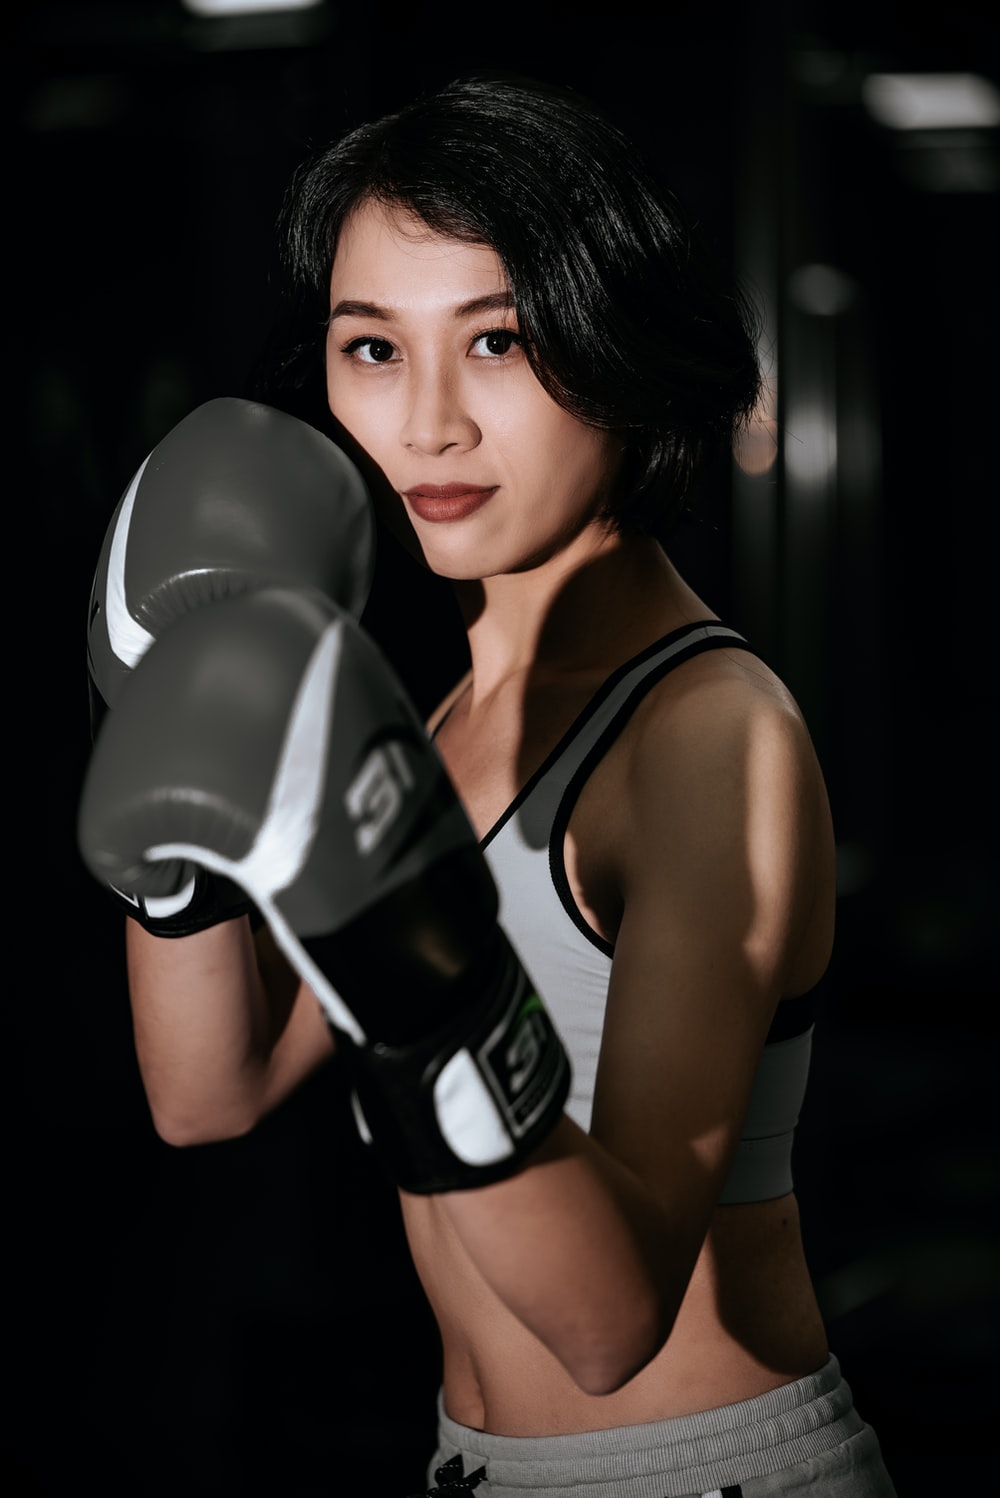 woman in black and white nike tank top wearing black boxing gloves